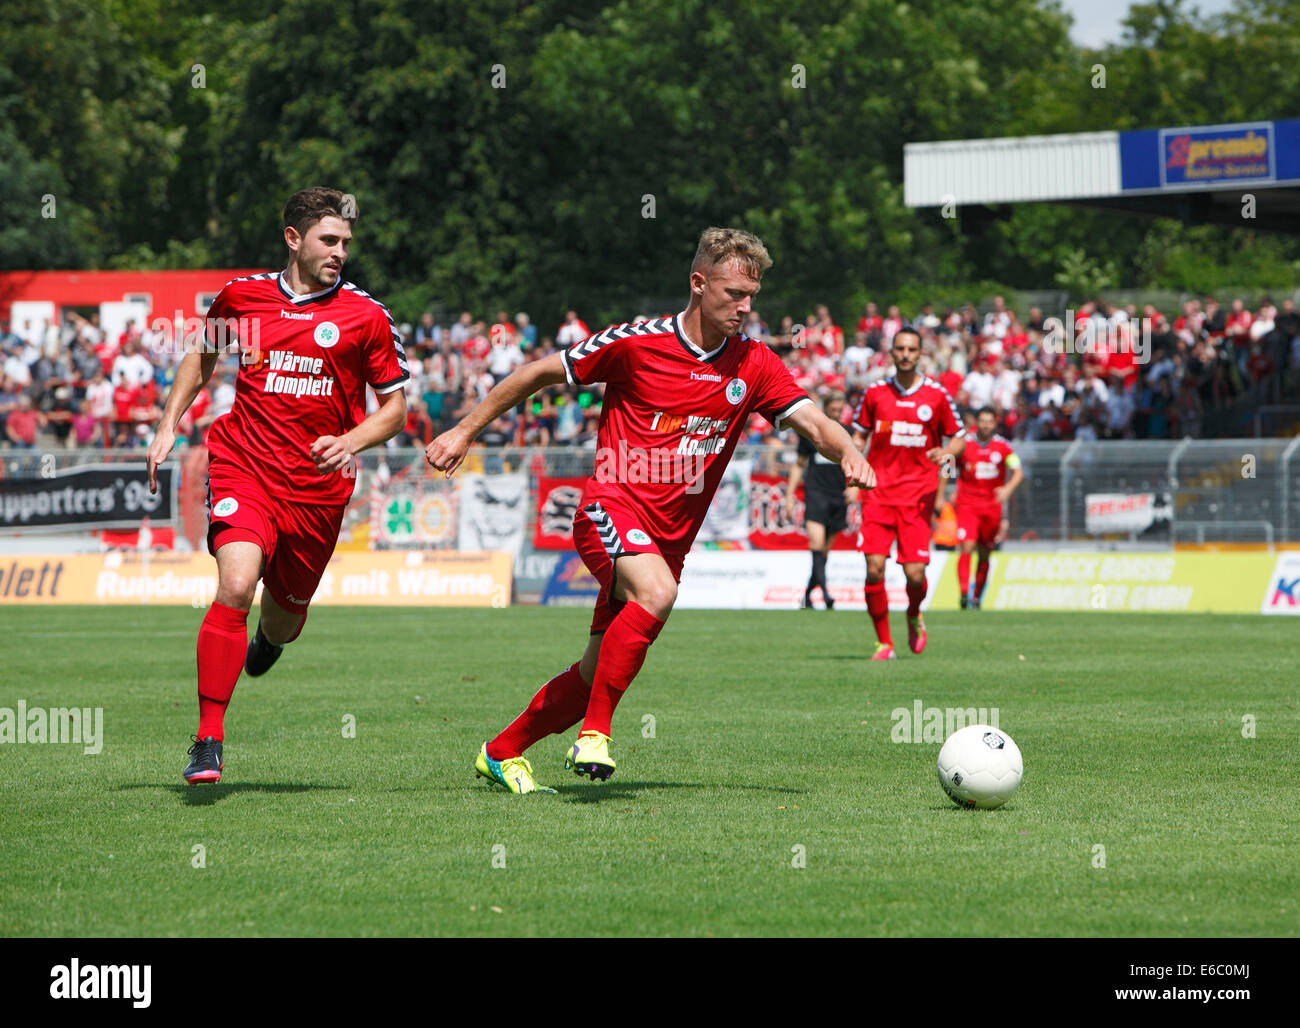 sports, football, Regional League West, 2014/2015, Rot Weiss Oberhausen versus Sportfreunde Siegen 2:1, Stadium Stock Photo